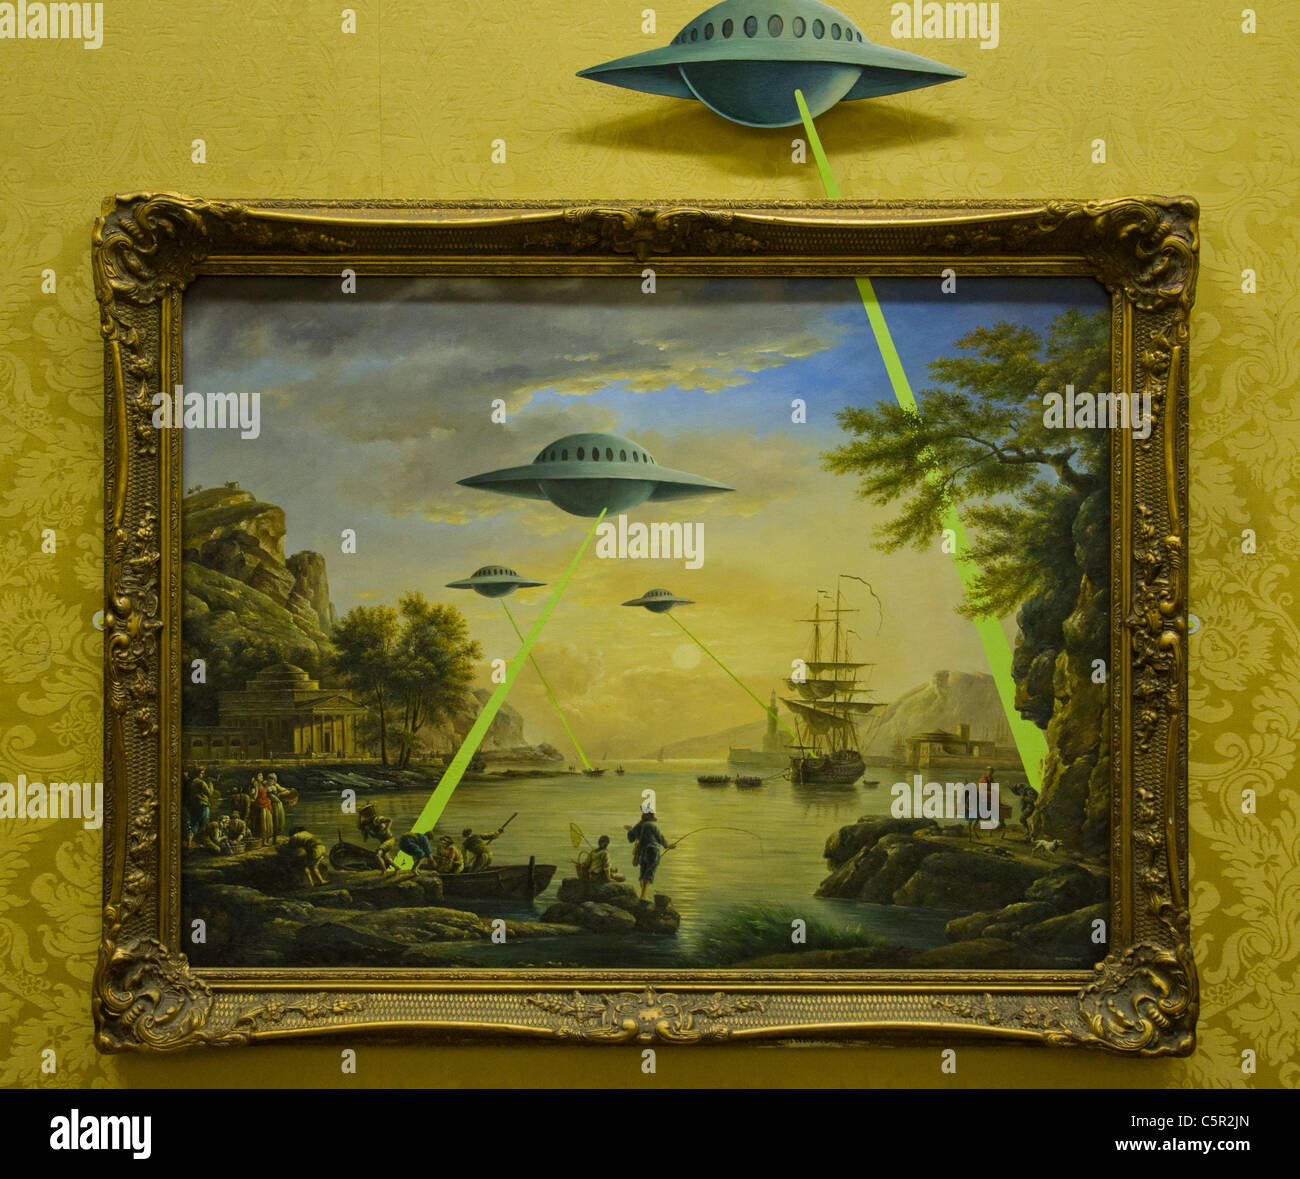 Banksy picture of traditional habour landscape with UFOs shooting lasers into it - Stock Image